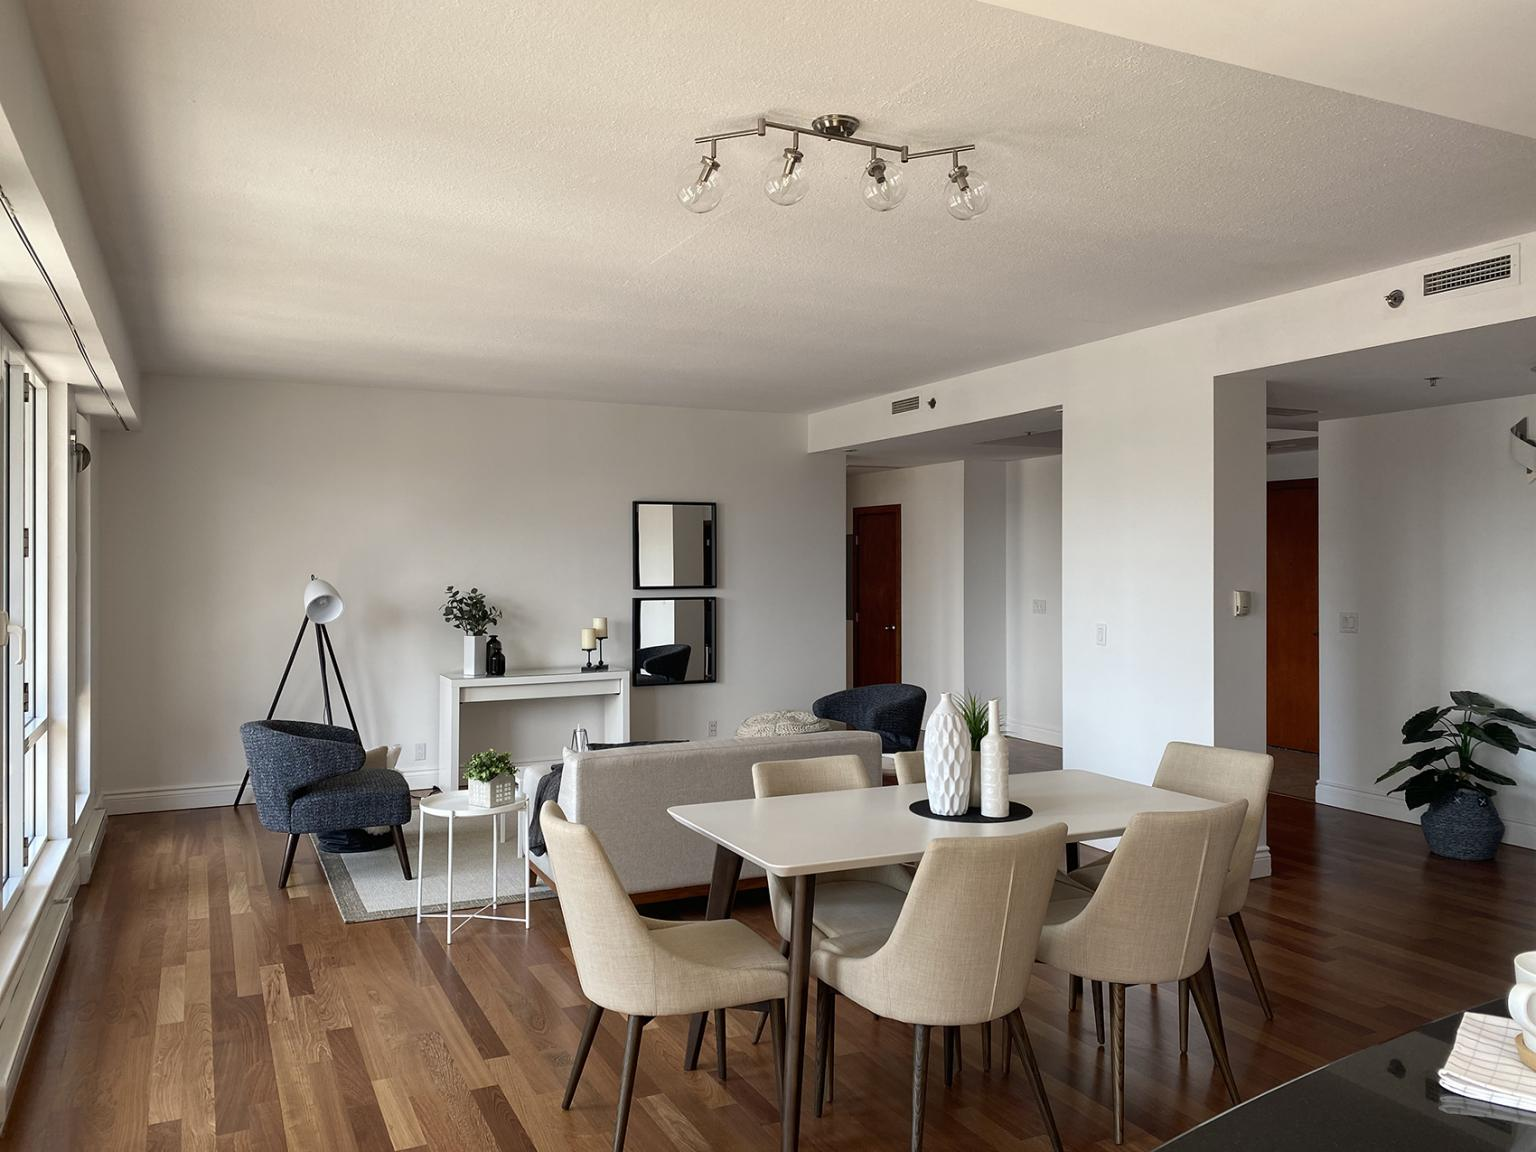 1 bedroom Apartments for rent in Montreal (Downtown) at Le Demetrius - Photo 41 - RentQuebecApartments – L406284